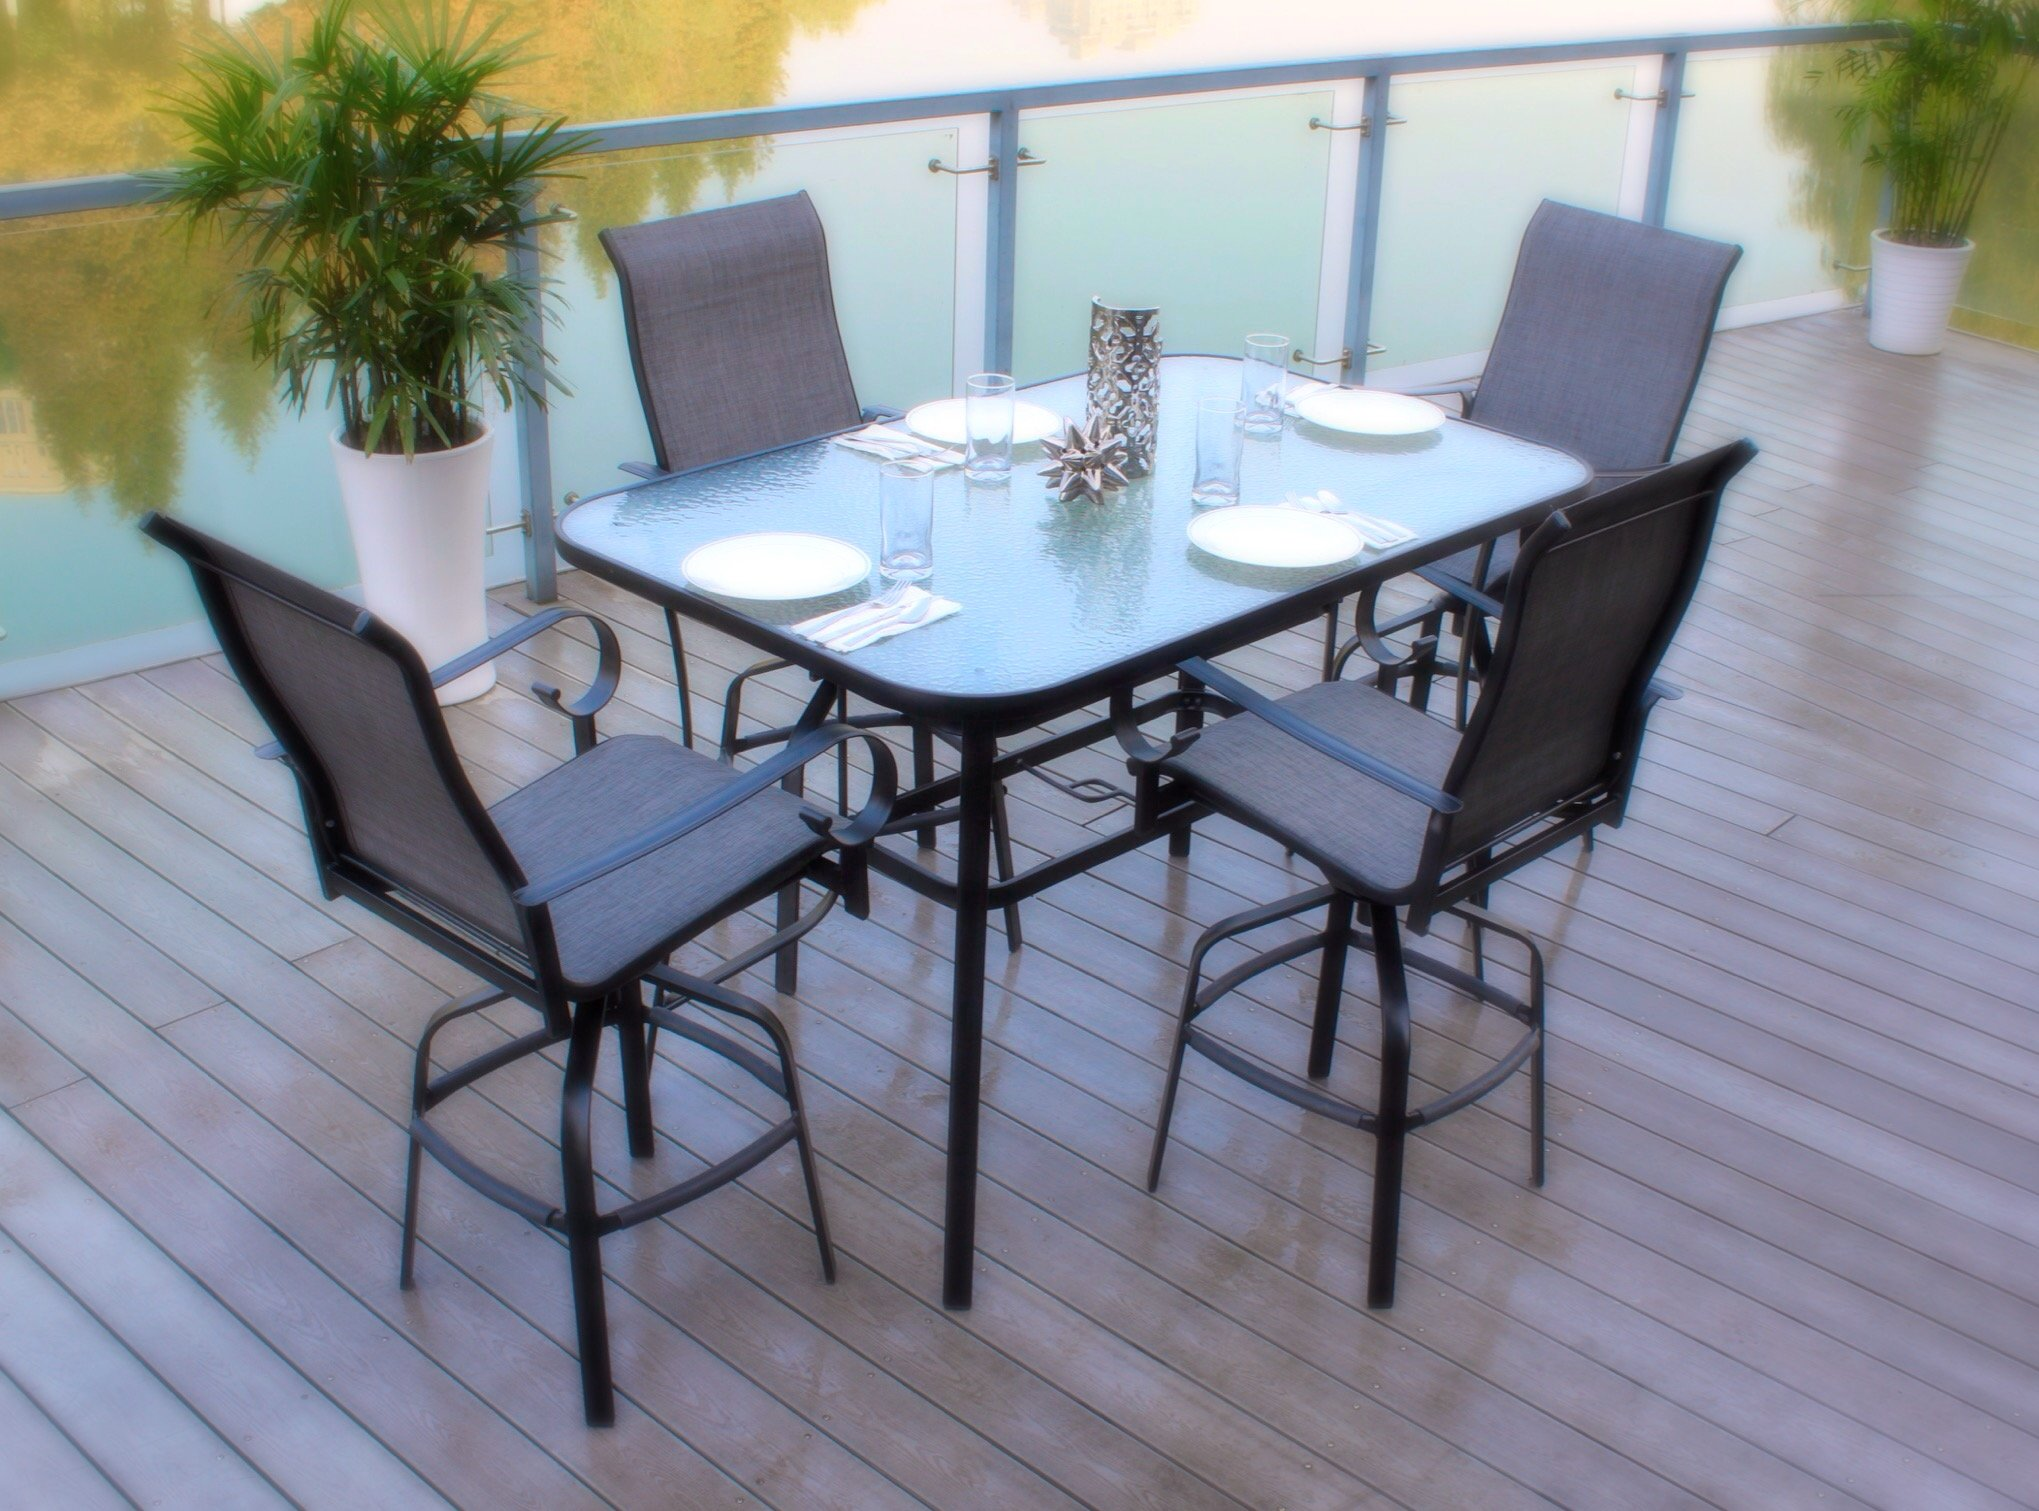 Pebble Lane Living All Weather Rust Resistant Indoor/Outdoor 5 Piece Powder Coated Patio Bar Dining Set, 1 Tempered Glass Top Bar Dining Table & 4 Swivel Bar Stools, Black/Grey